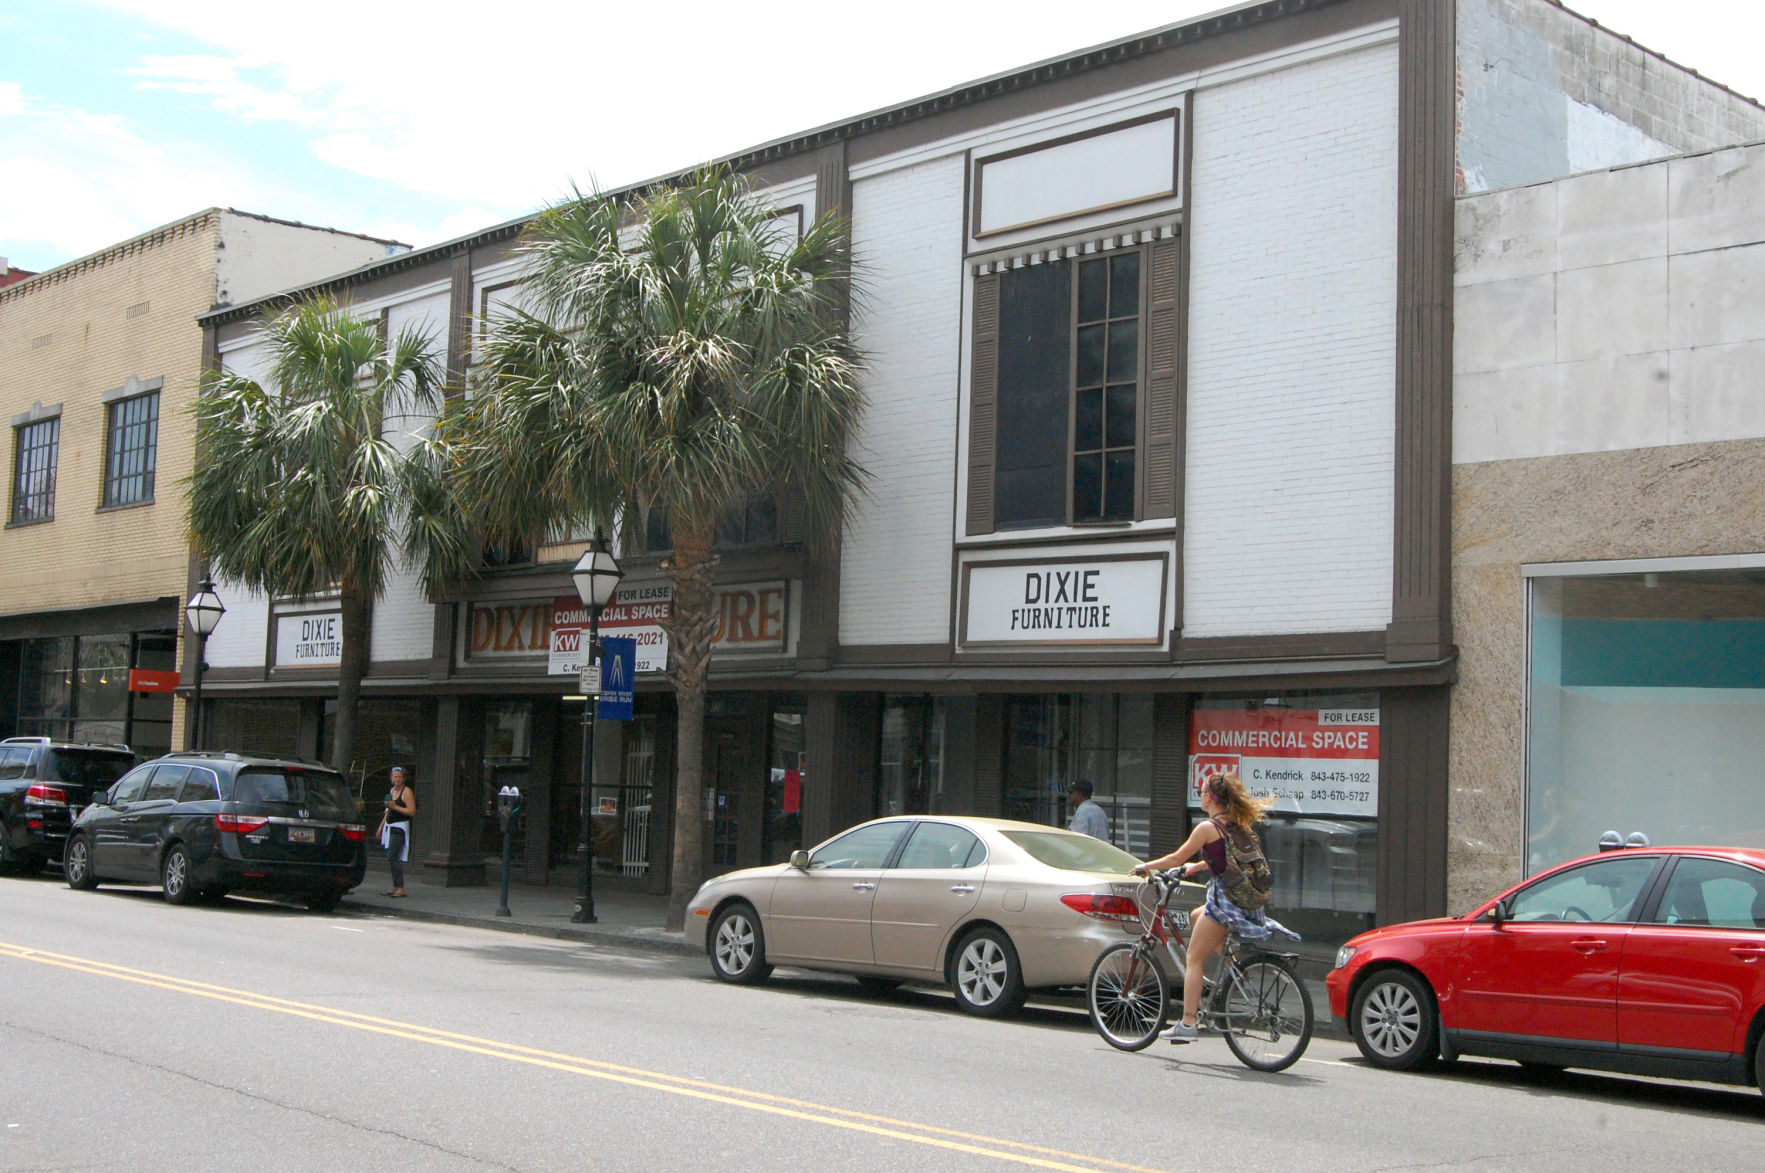 Charlestonu0027s New Height Rule Bogs Down Hotel Planned For Ex Dixie Furniture  Site | Business | Postandcourier.com